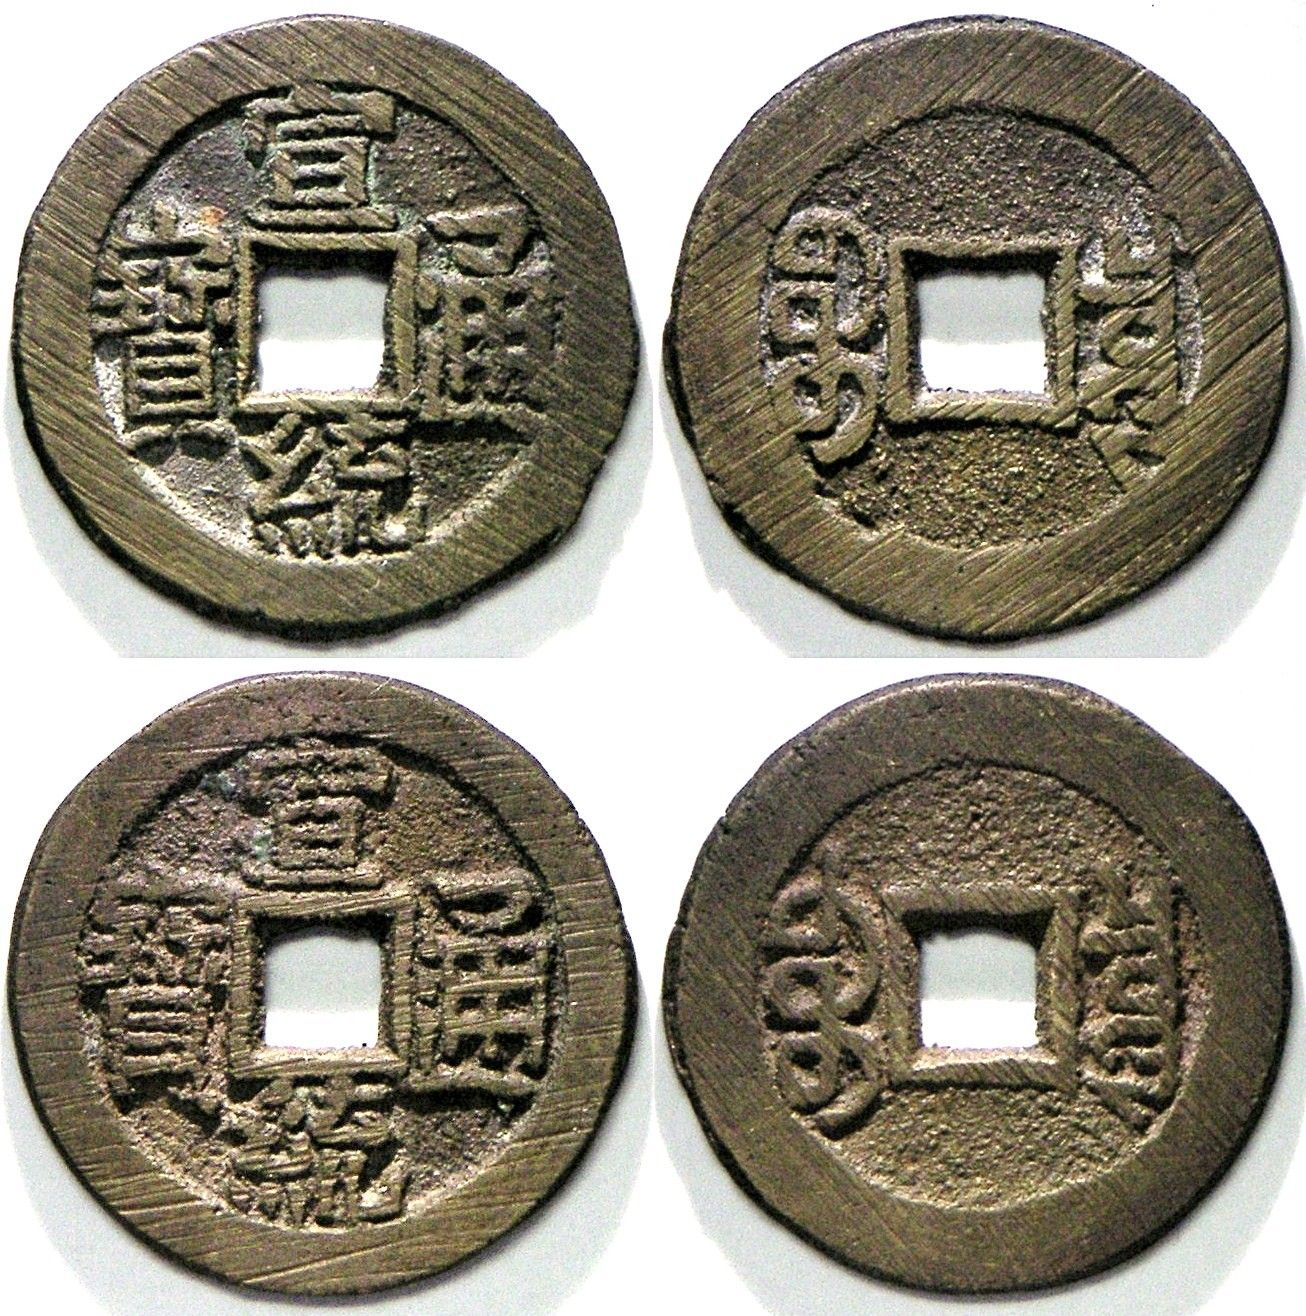 Chinese Coins From The Qing Dynasty